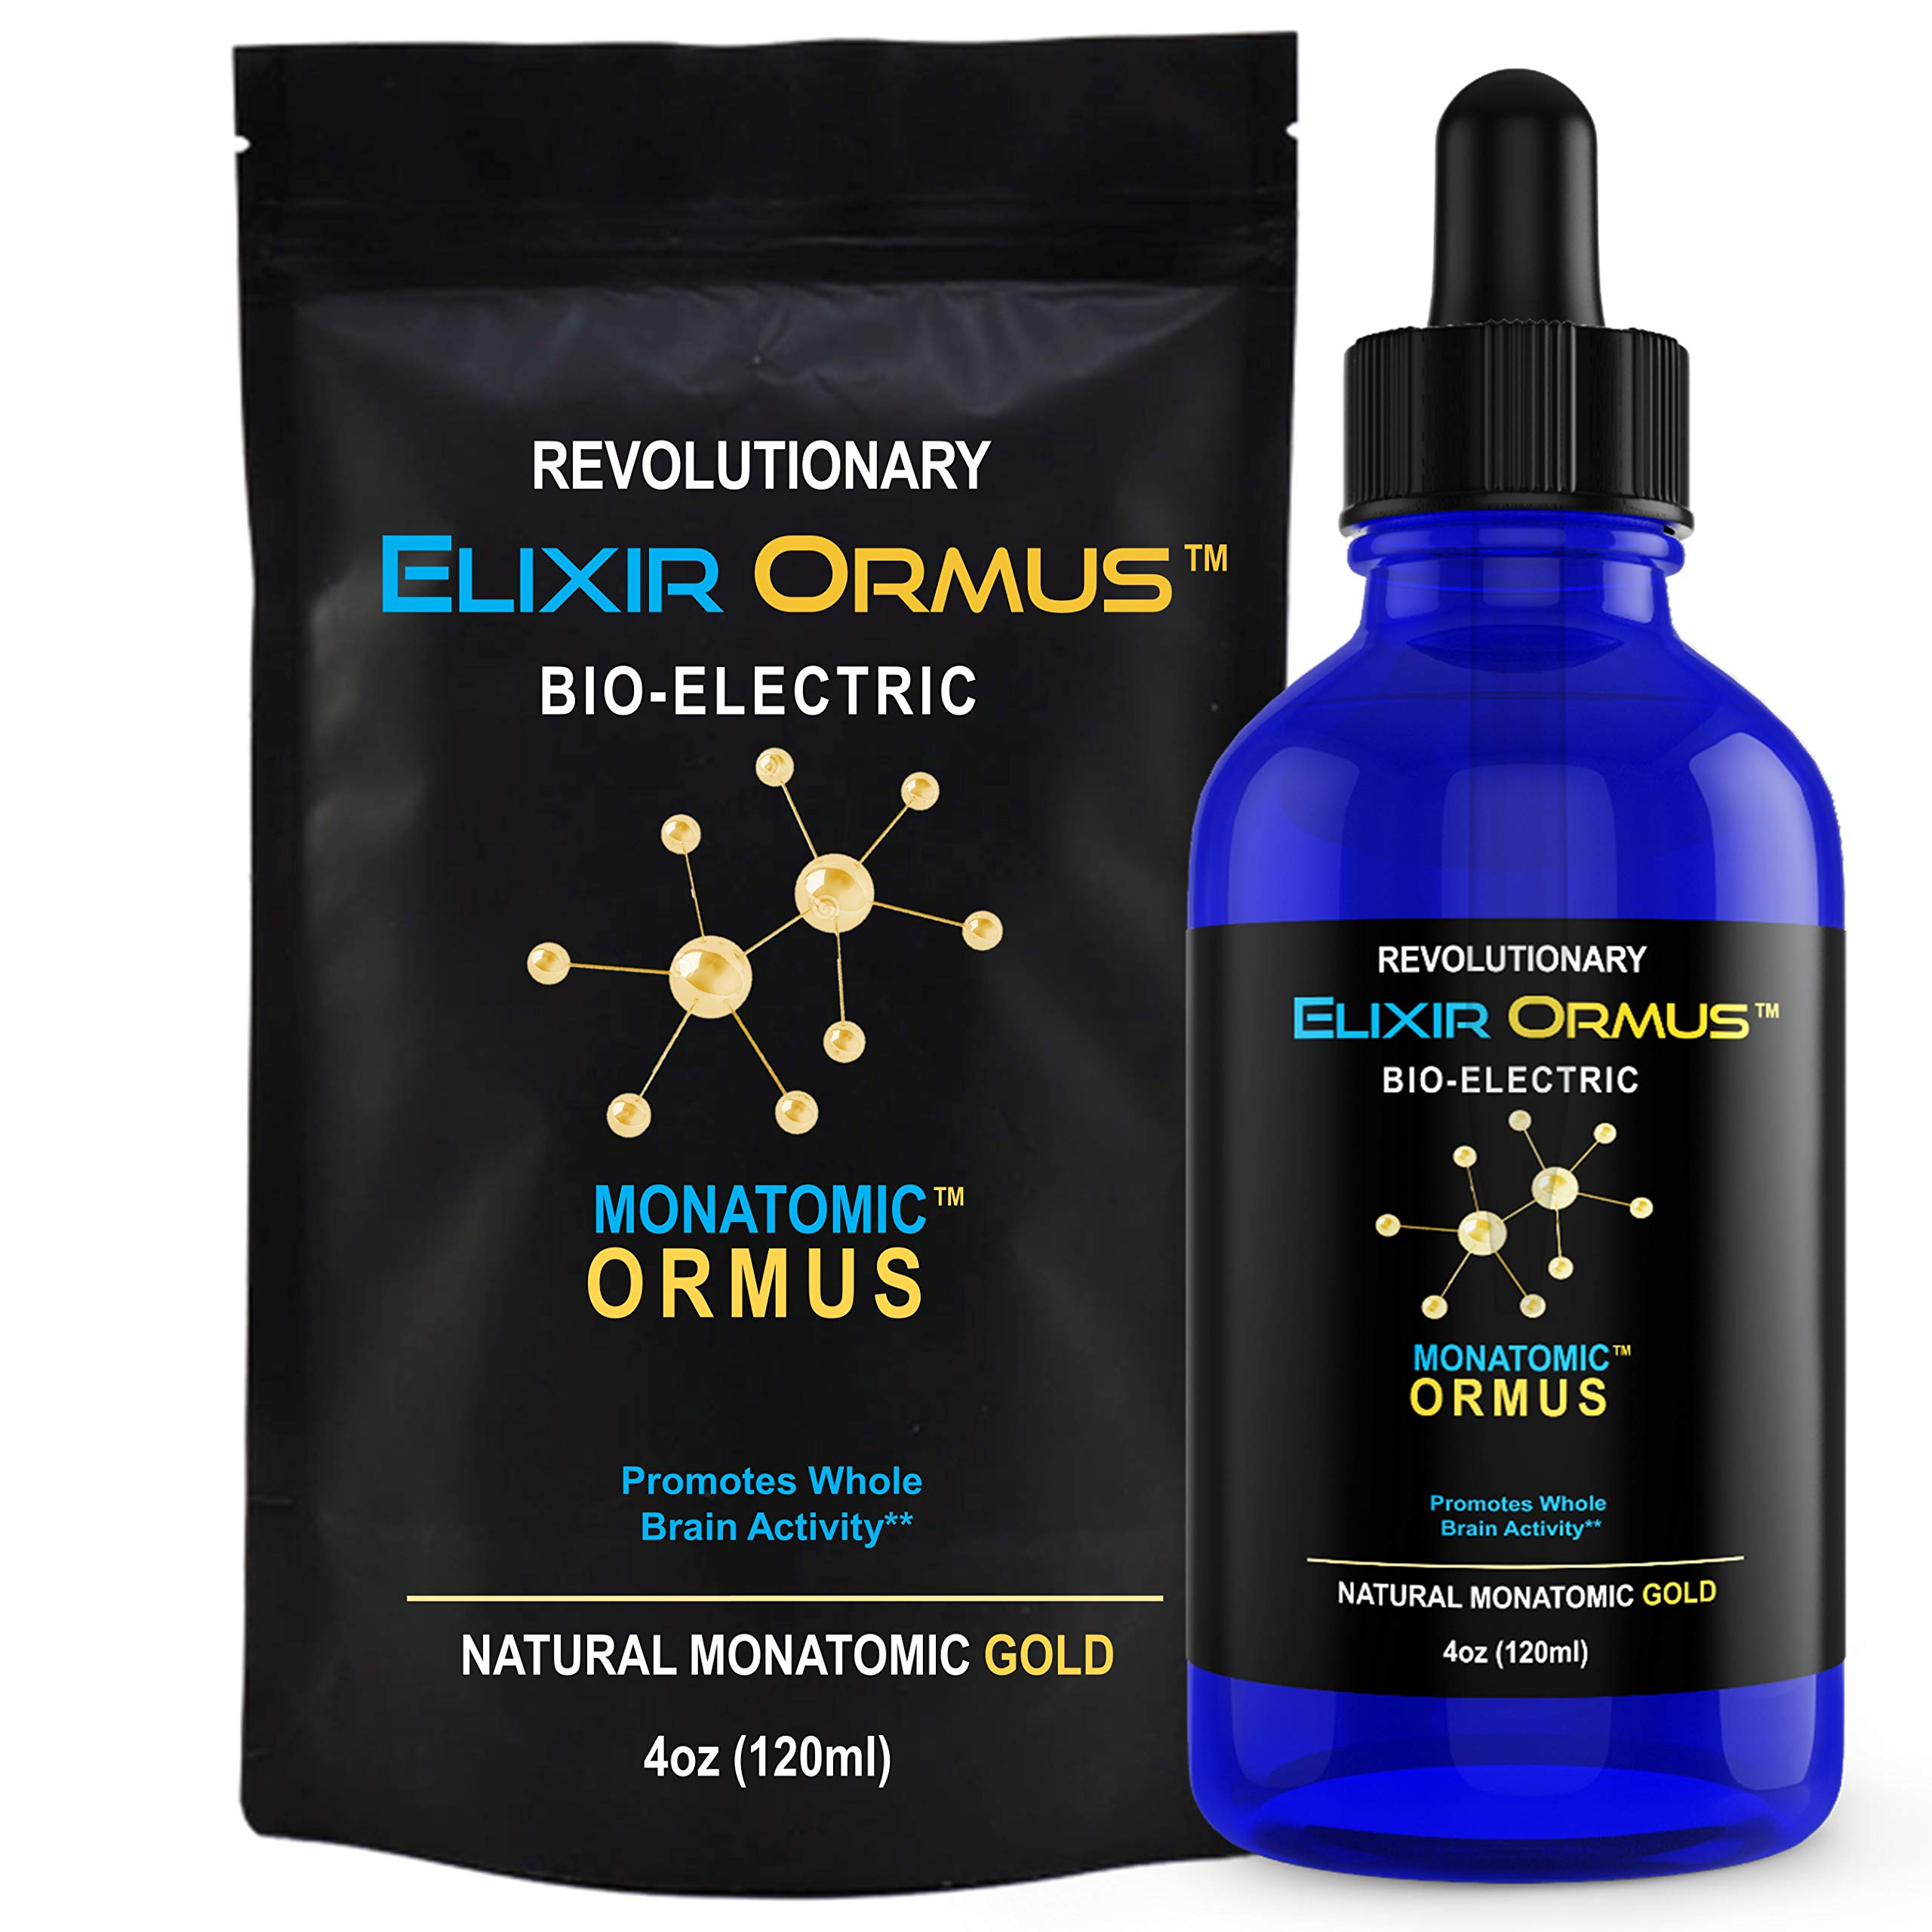 Elixir ORMUS - 4oz - Monoatomic Gold - Manna, Memory AID, Energetically, Monatomic White Powder Gold, Increased Energy, Stamina, Vitality - Gold, Platinum, Iridium